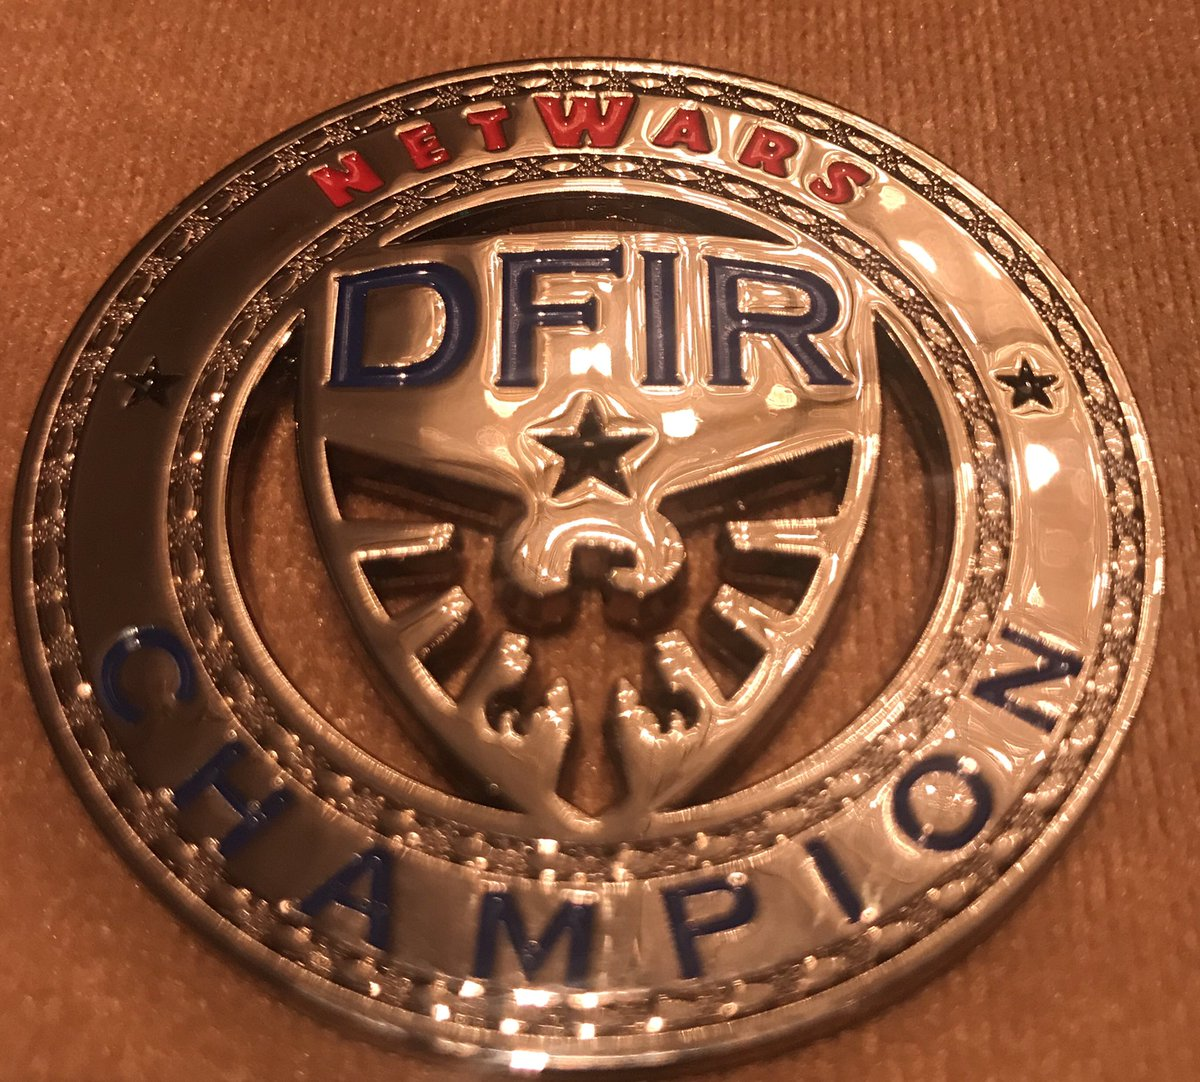 Brand New #DFIR #NetWars Champion Challenge Coins being released at #DFIRSummit - sign up for Netwars on June 27/28 https://t.co/RFXOdQGlXK